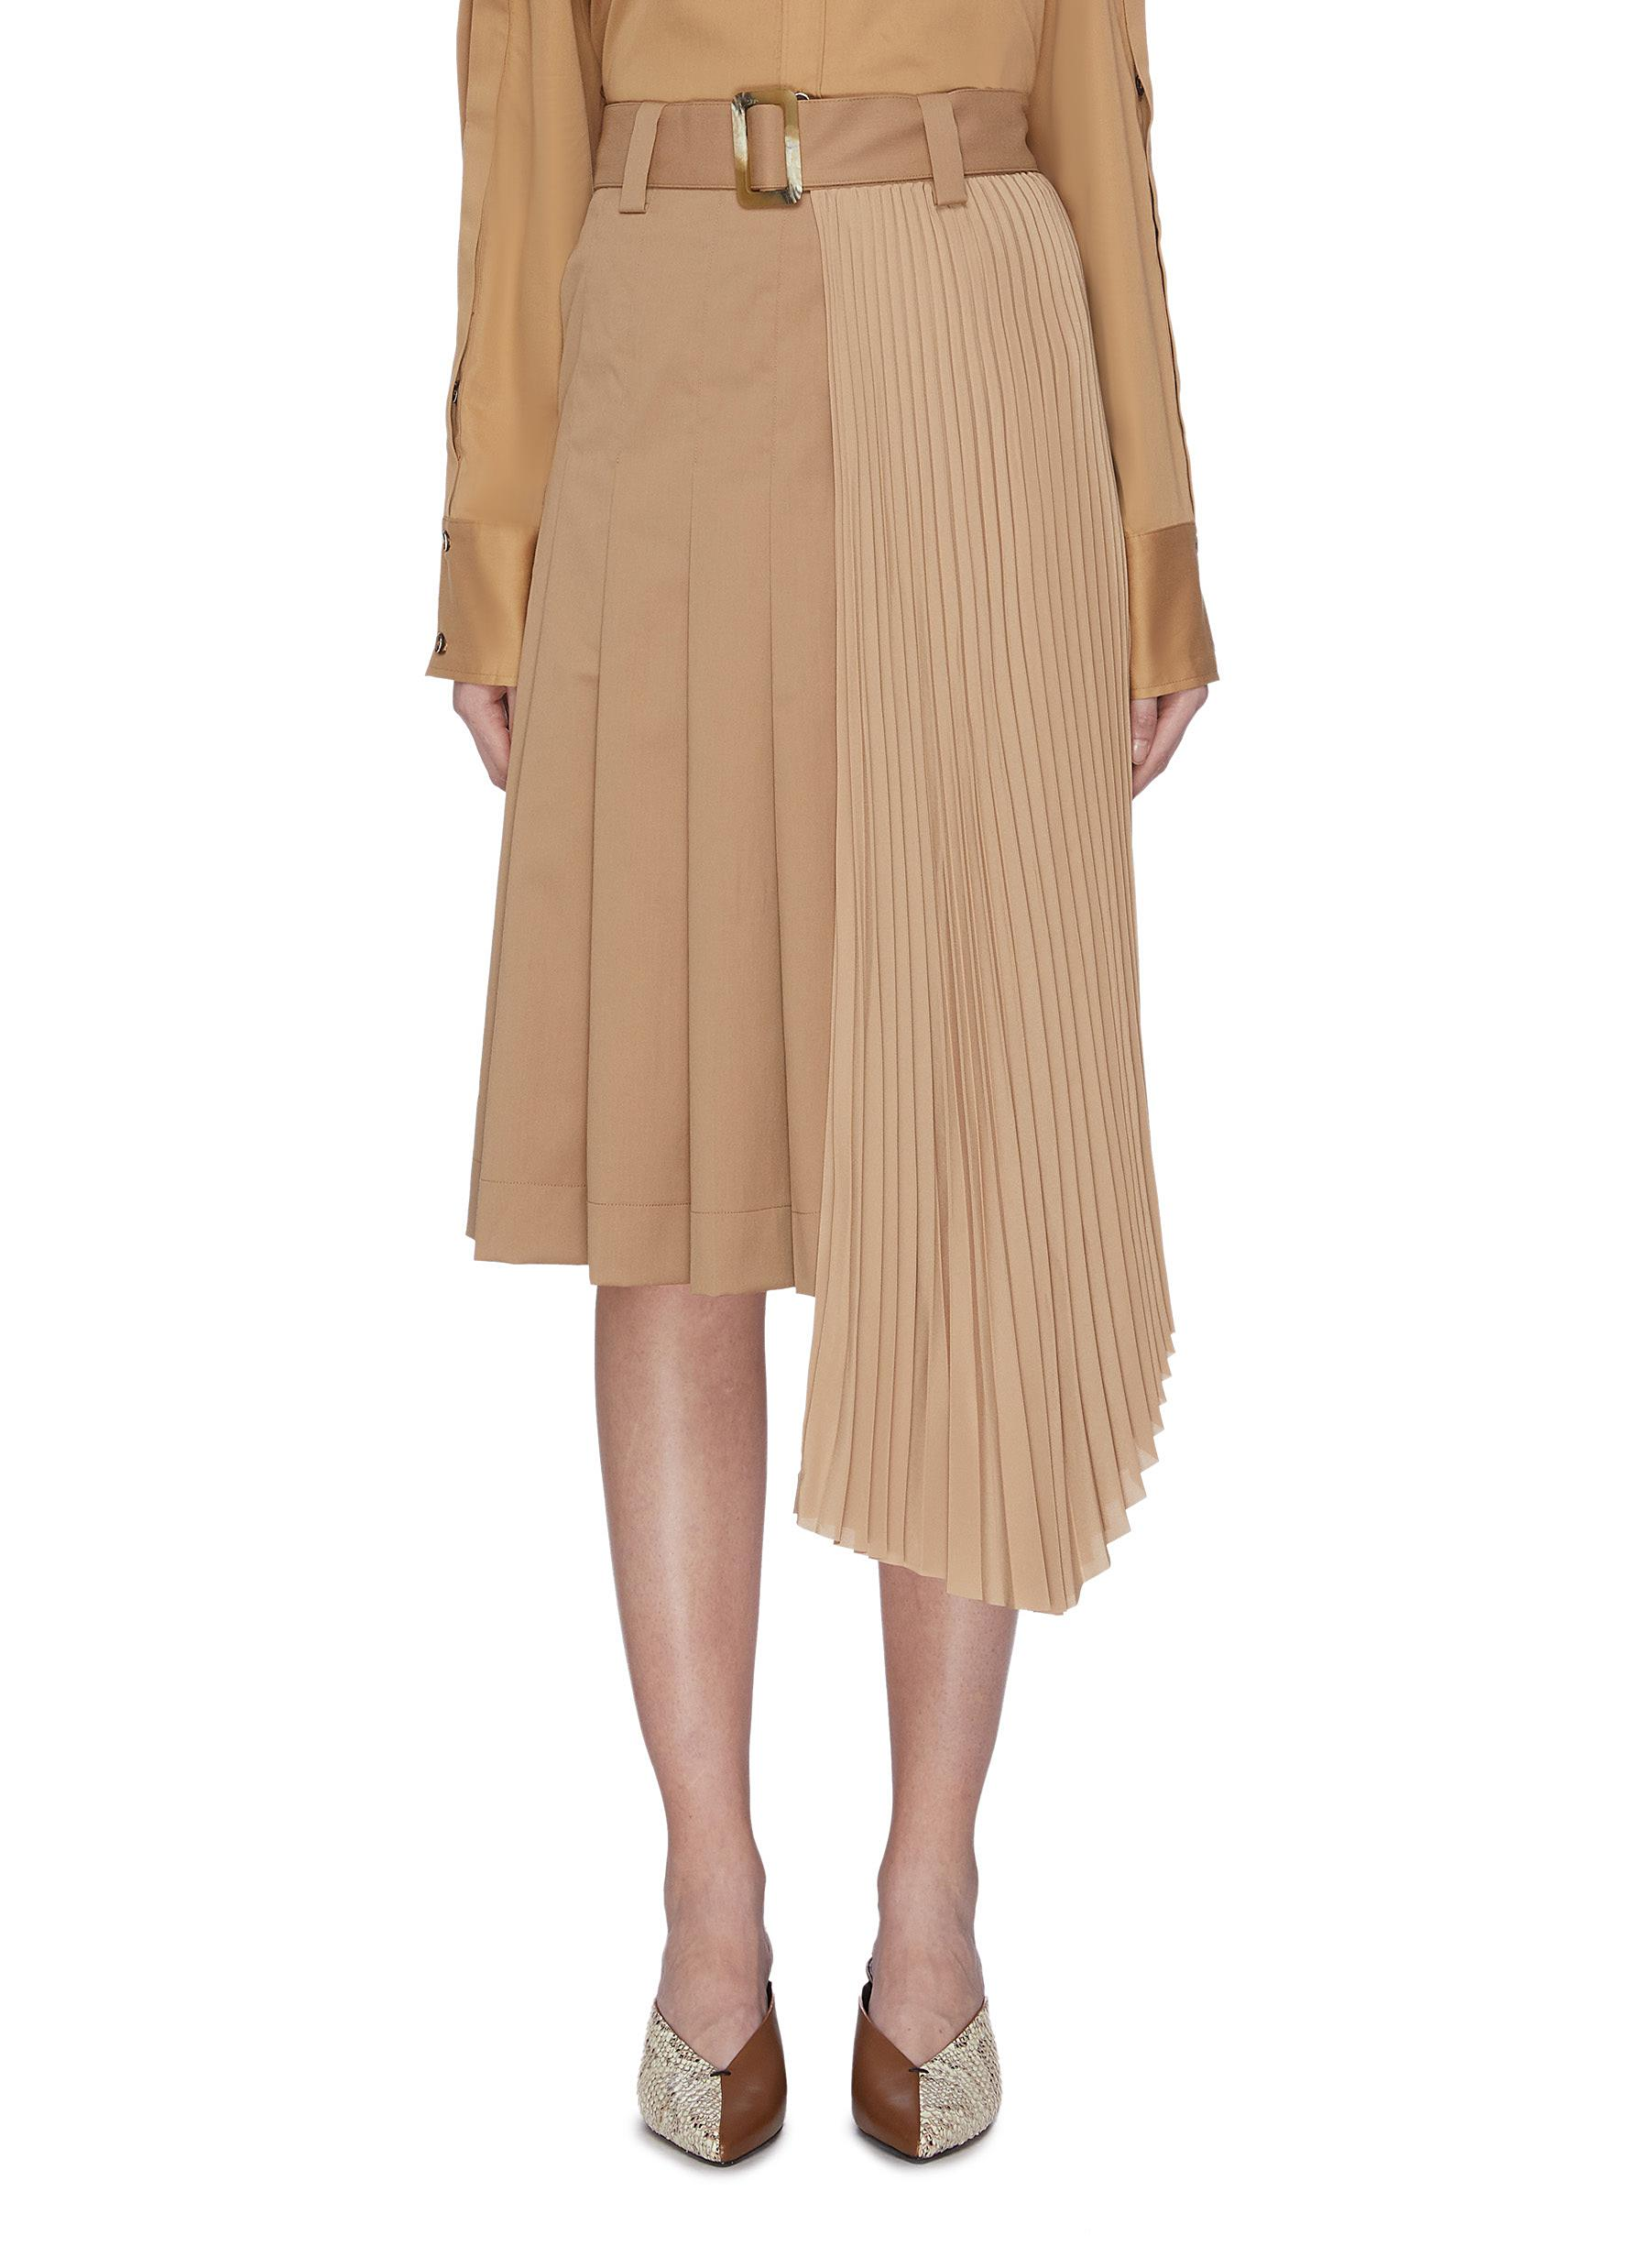 Belted asymmetric pleated skirt by Equil